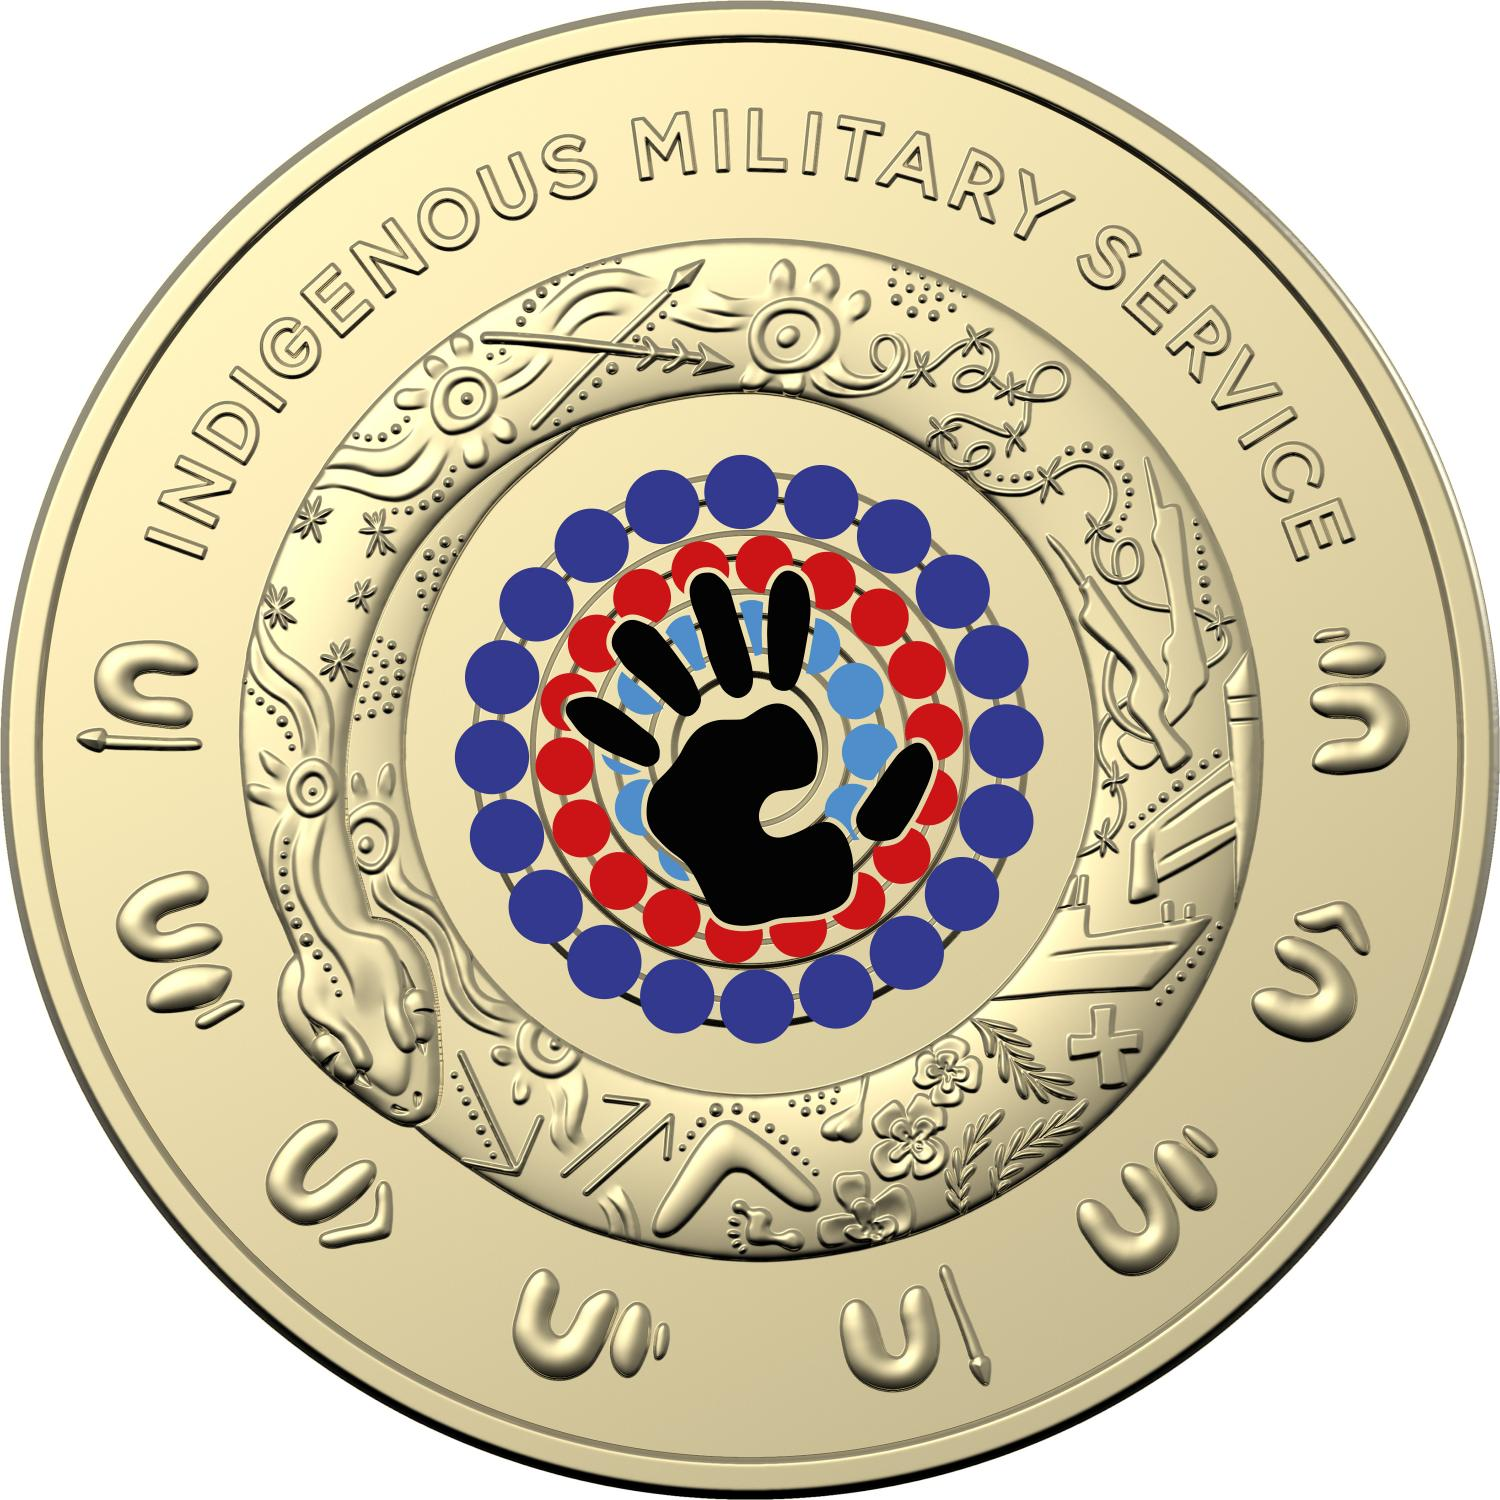 Thumbnail for 2021 $2 Indigenous Service AlBr Circulating RAM Official Coin Roll with Hologram sticker